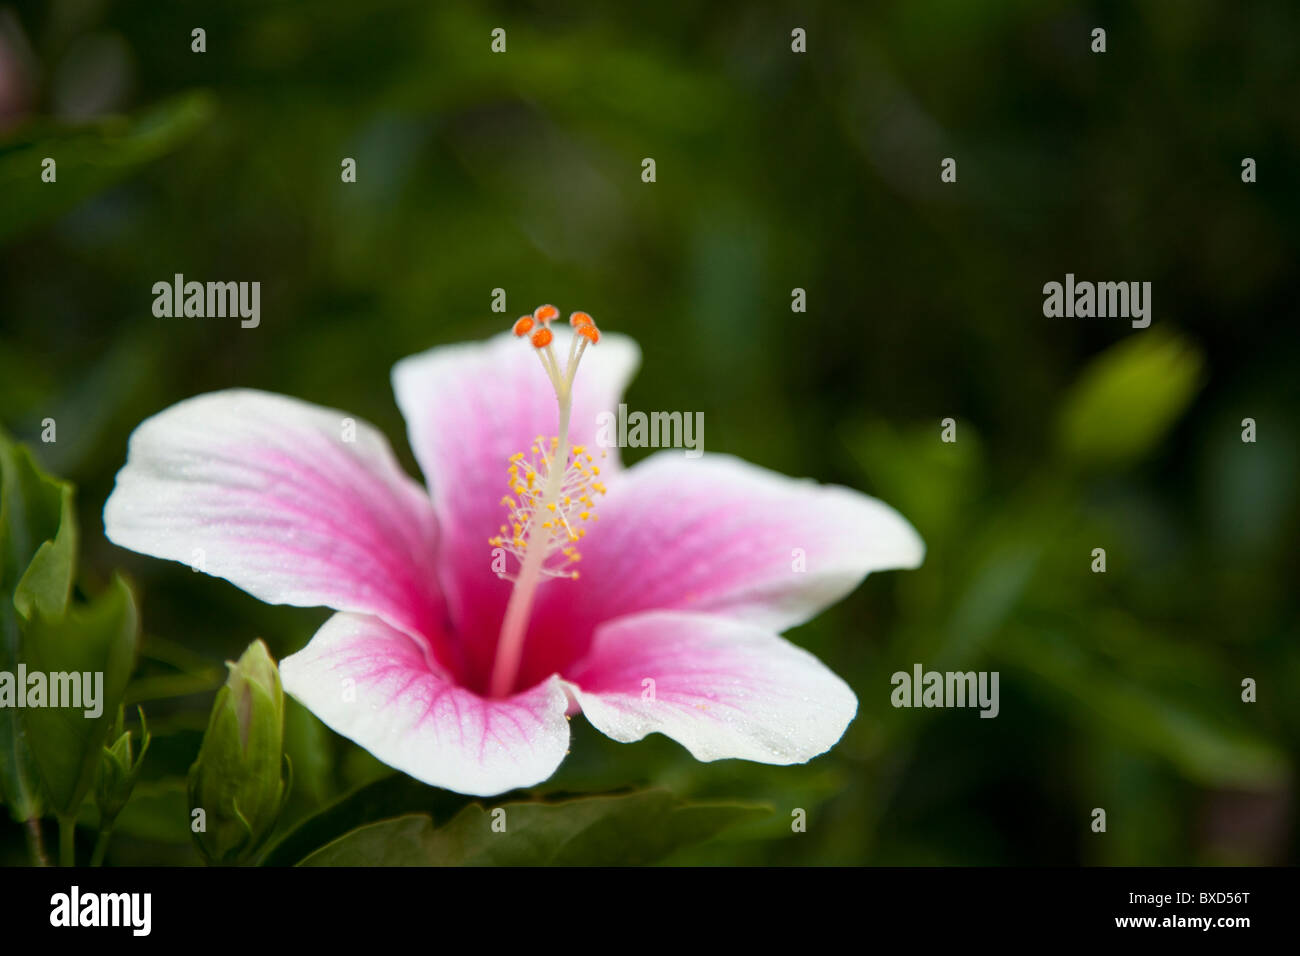 A pink hibiscus flower. - Stock Image